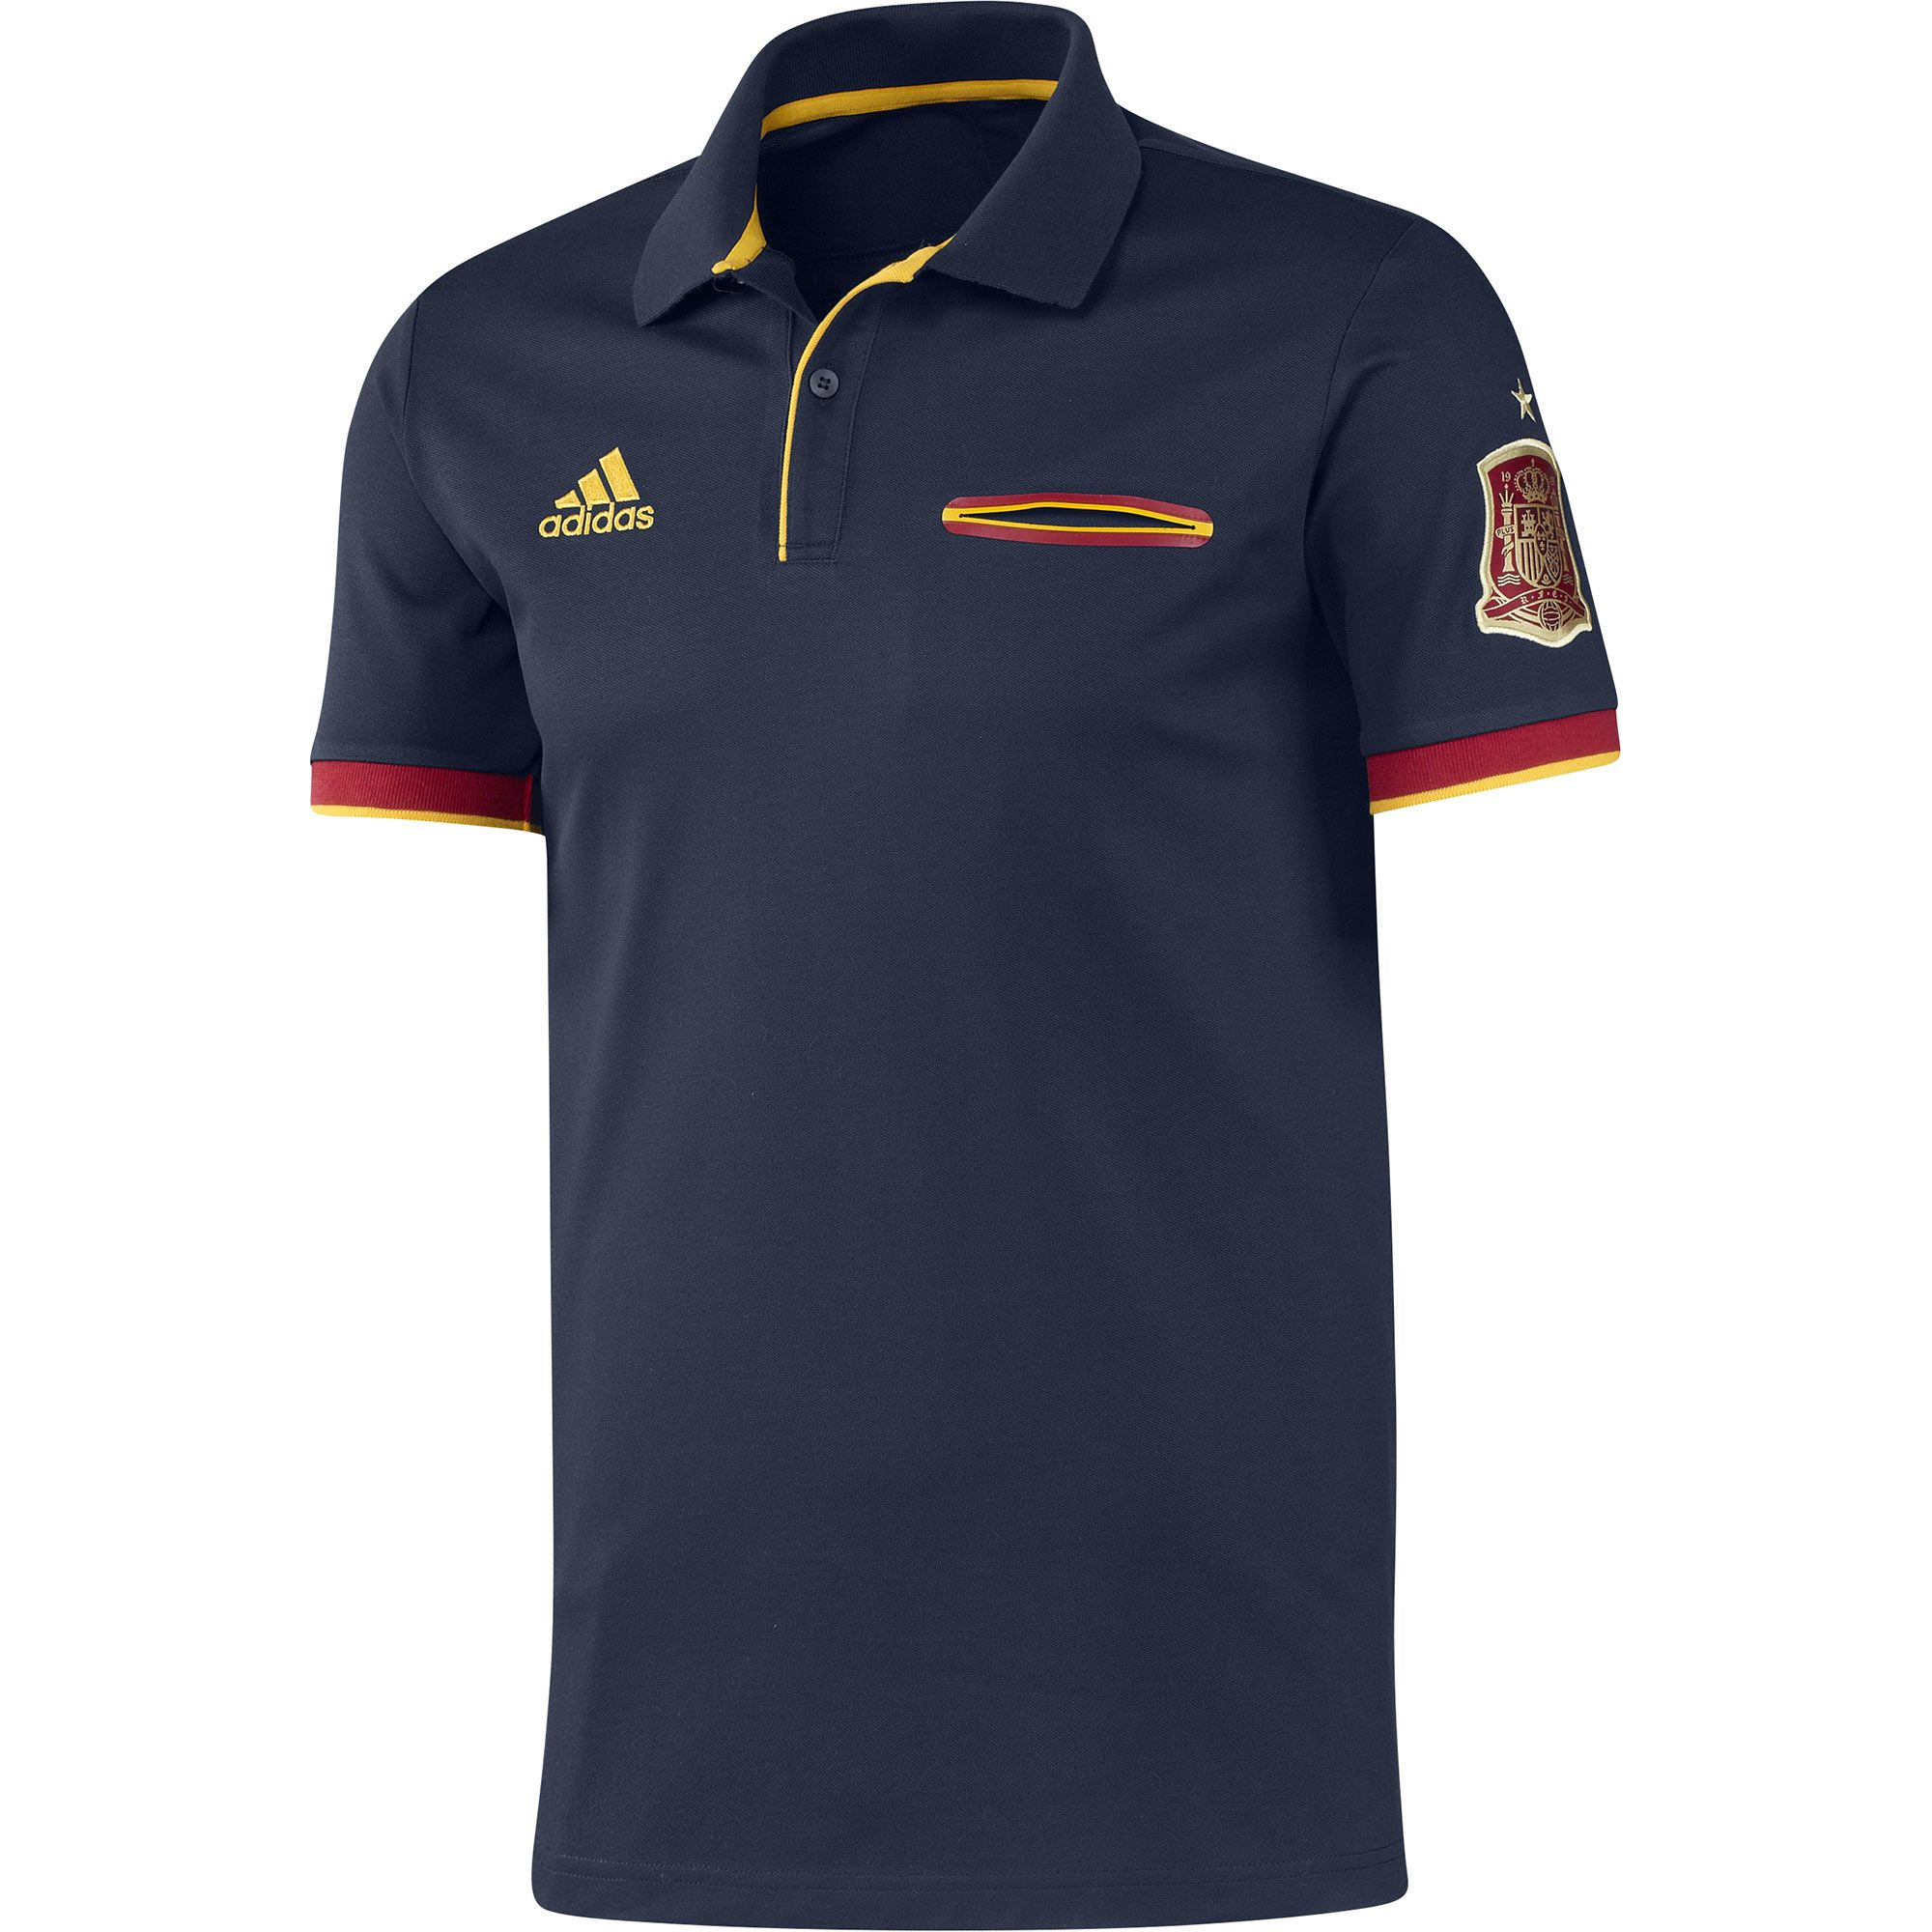 Spain Adidas navy blue mens cotton blend world cup football polo shirt